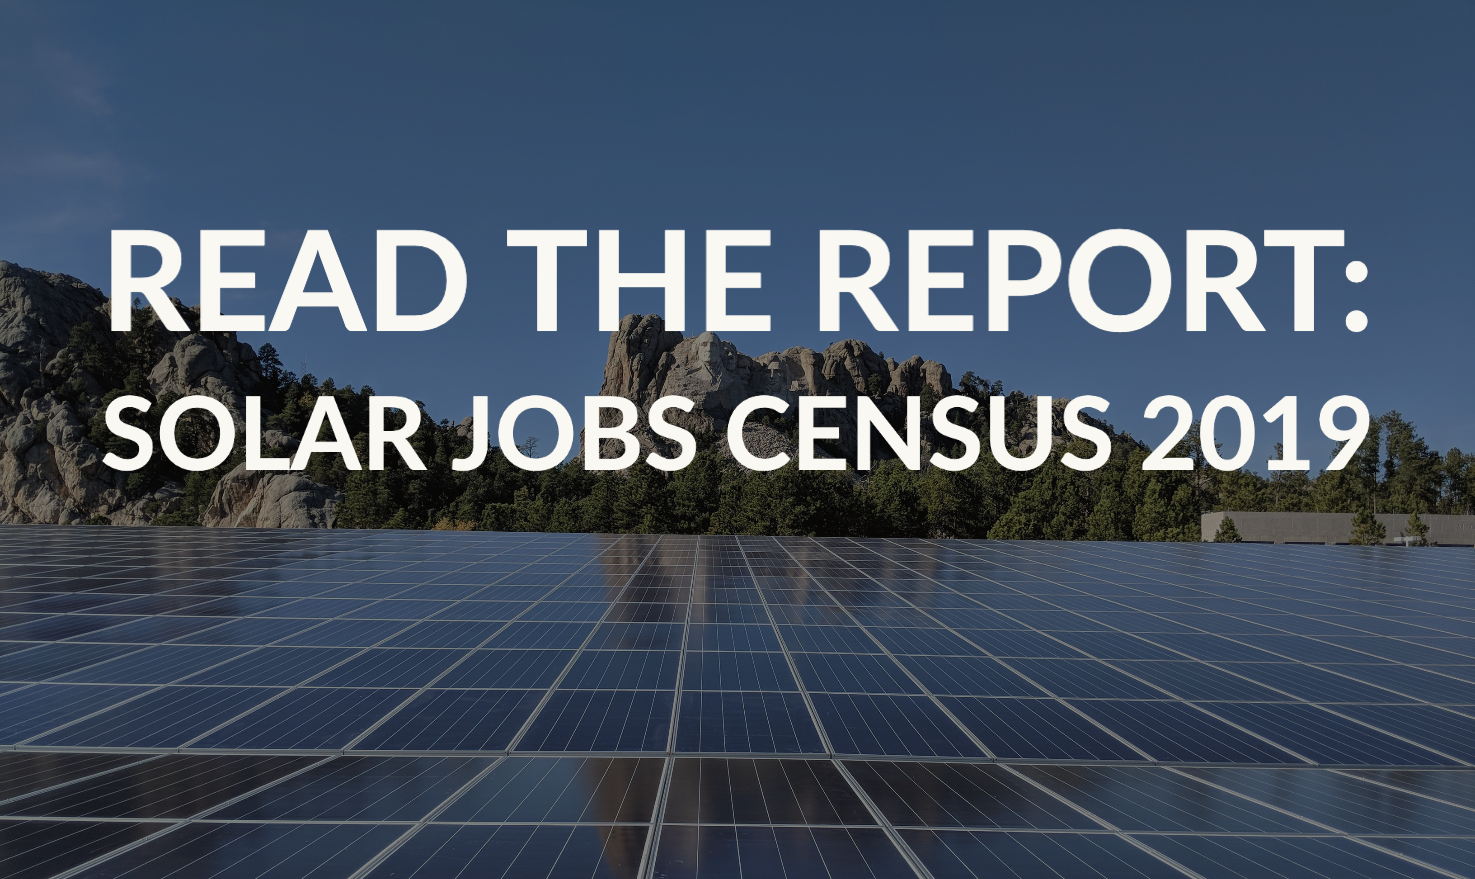 What degree do you need to work with solar energy?